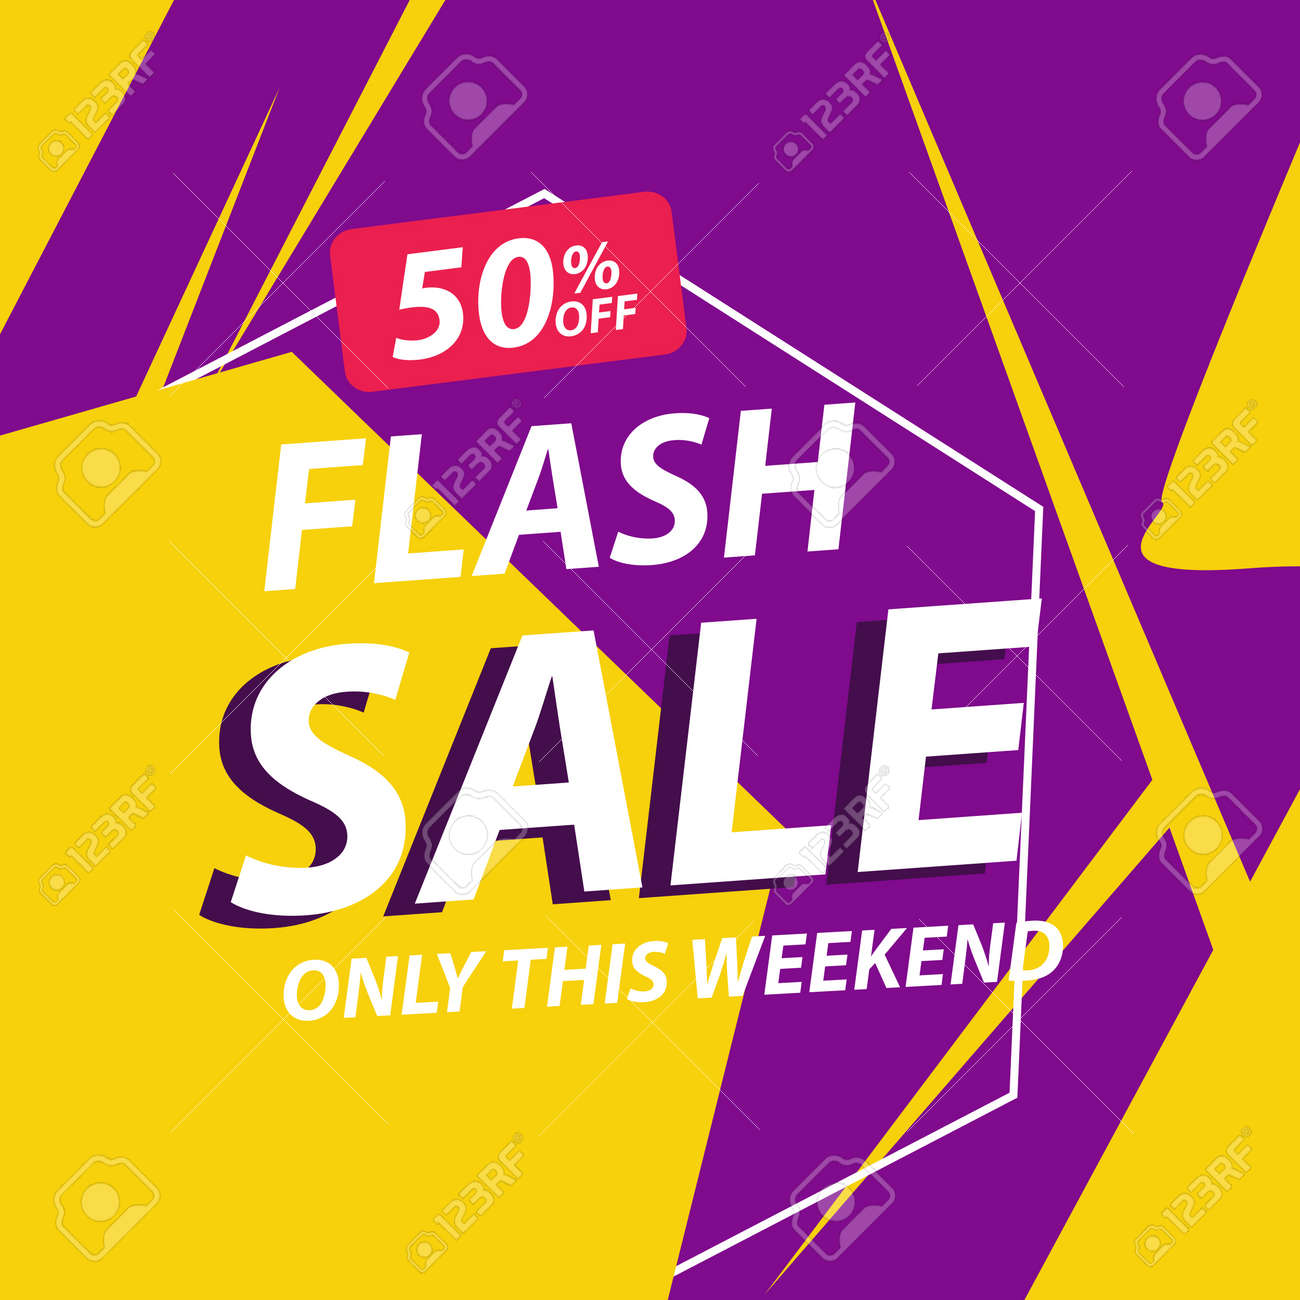 Flash sale discount banner template promotion - 151739055